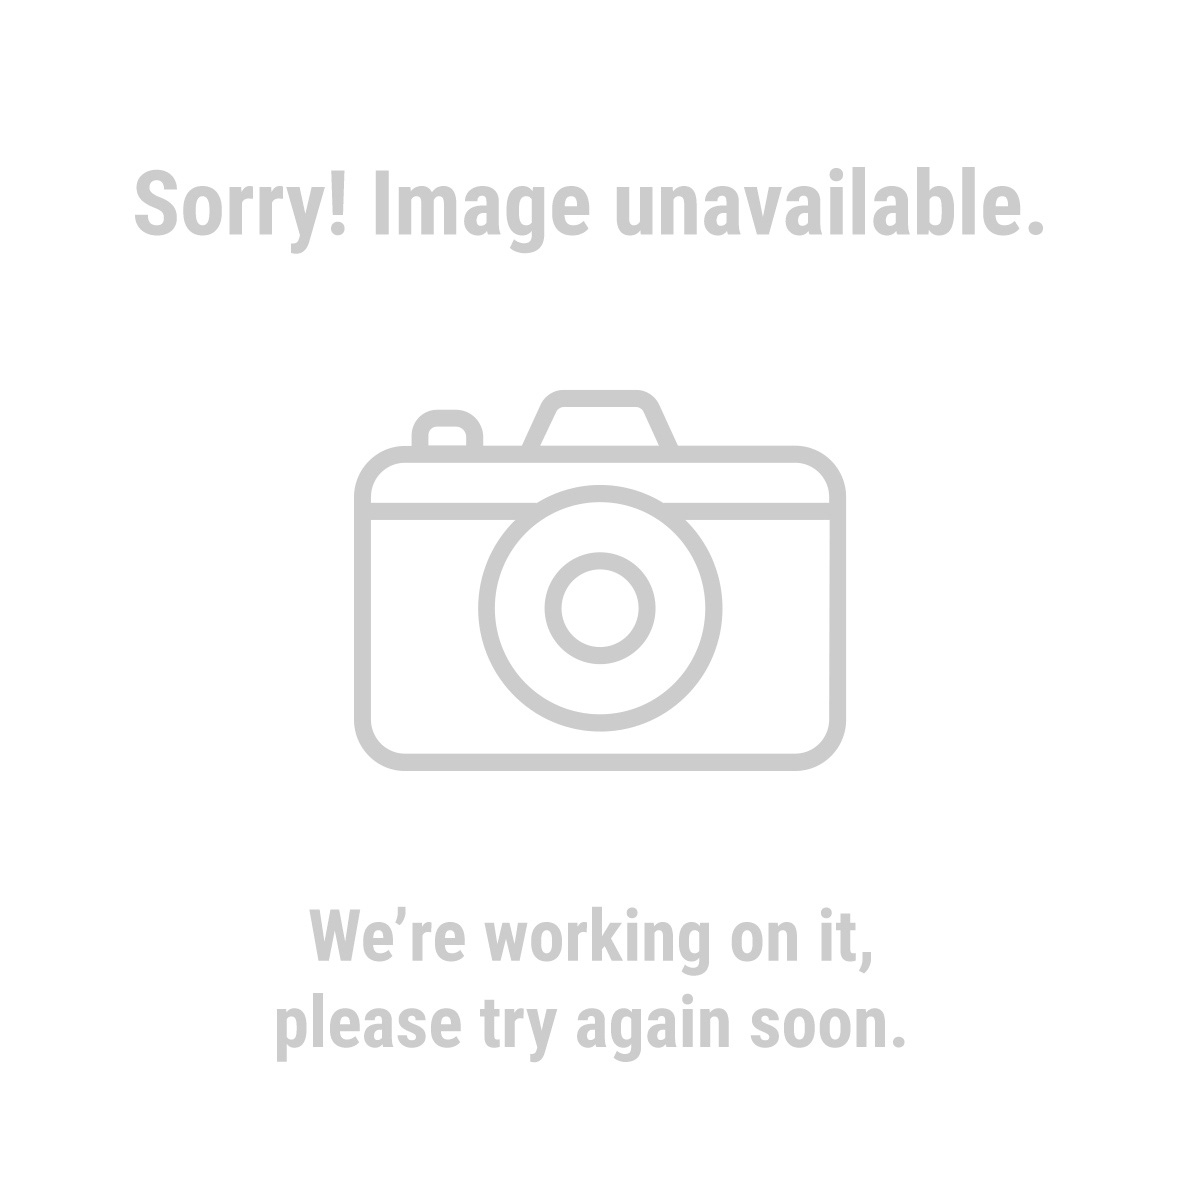 HFT 955 28 ft. 10'' x 59 ft. All Purpose Weather Resistant Tarp